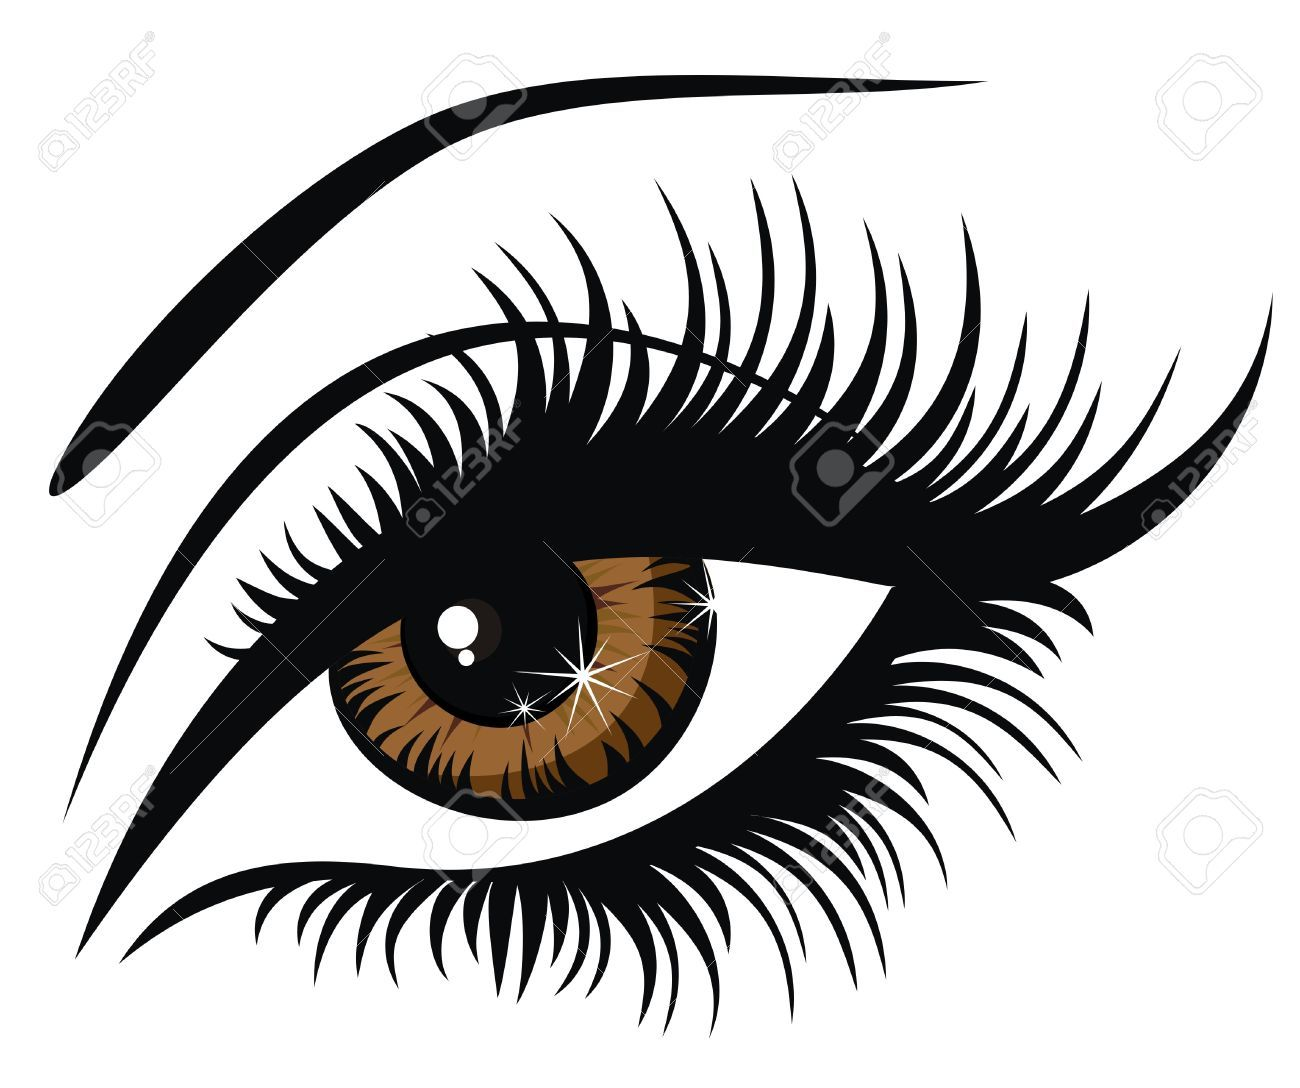 Dark eye clipart library eyelash clip art - Google Search | diana in 2019 | Eyes clipart ... library